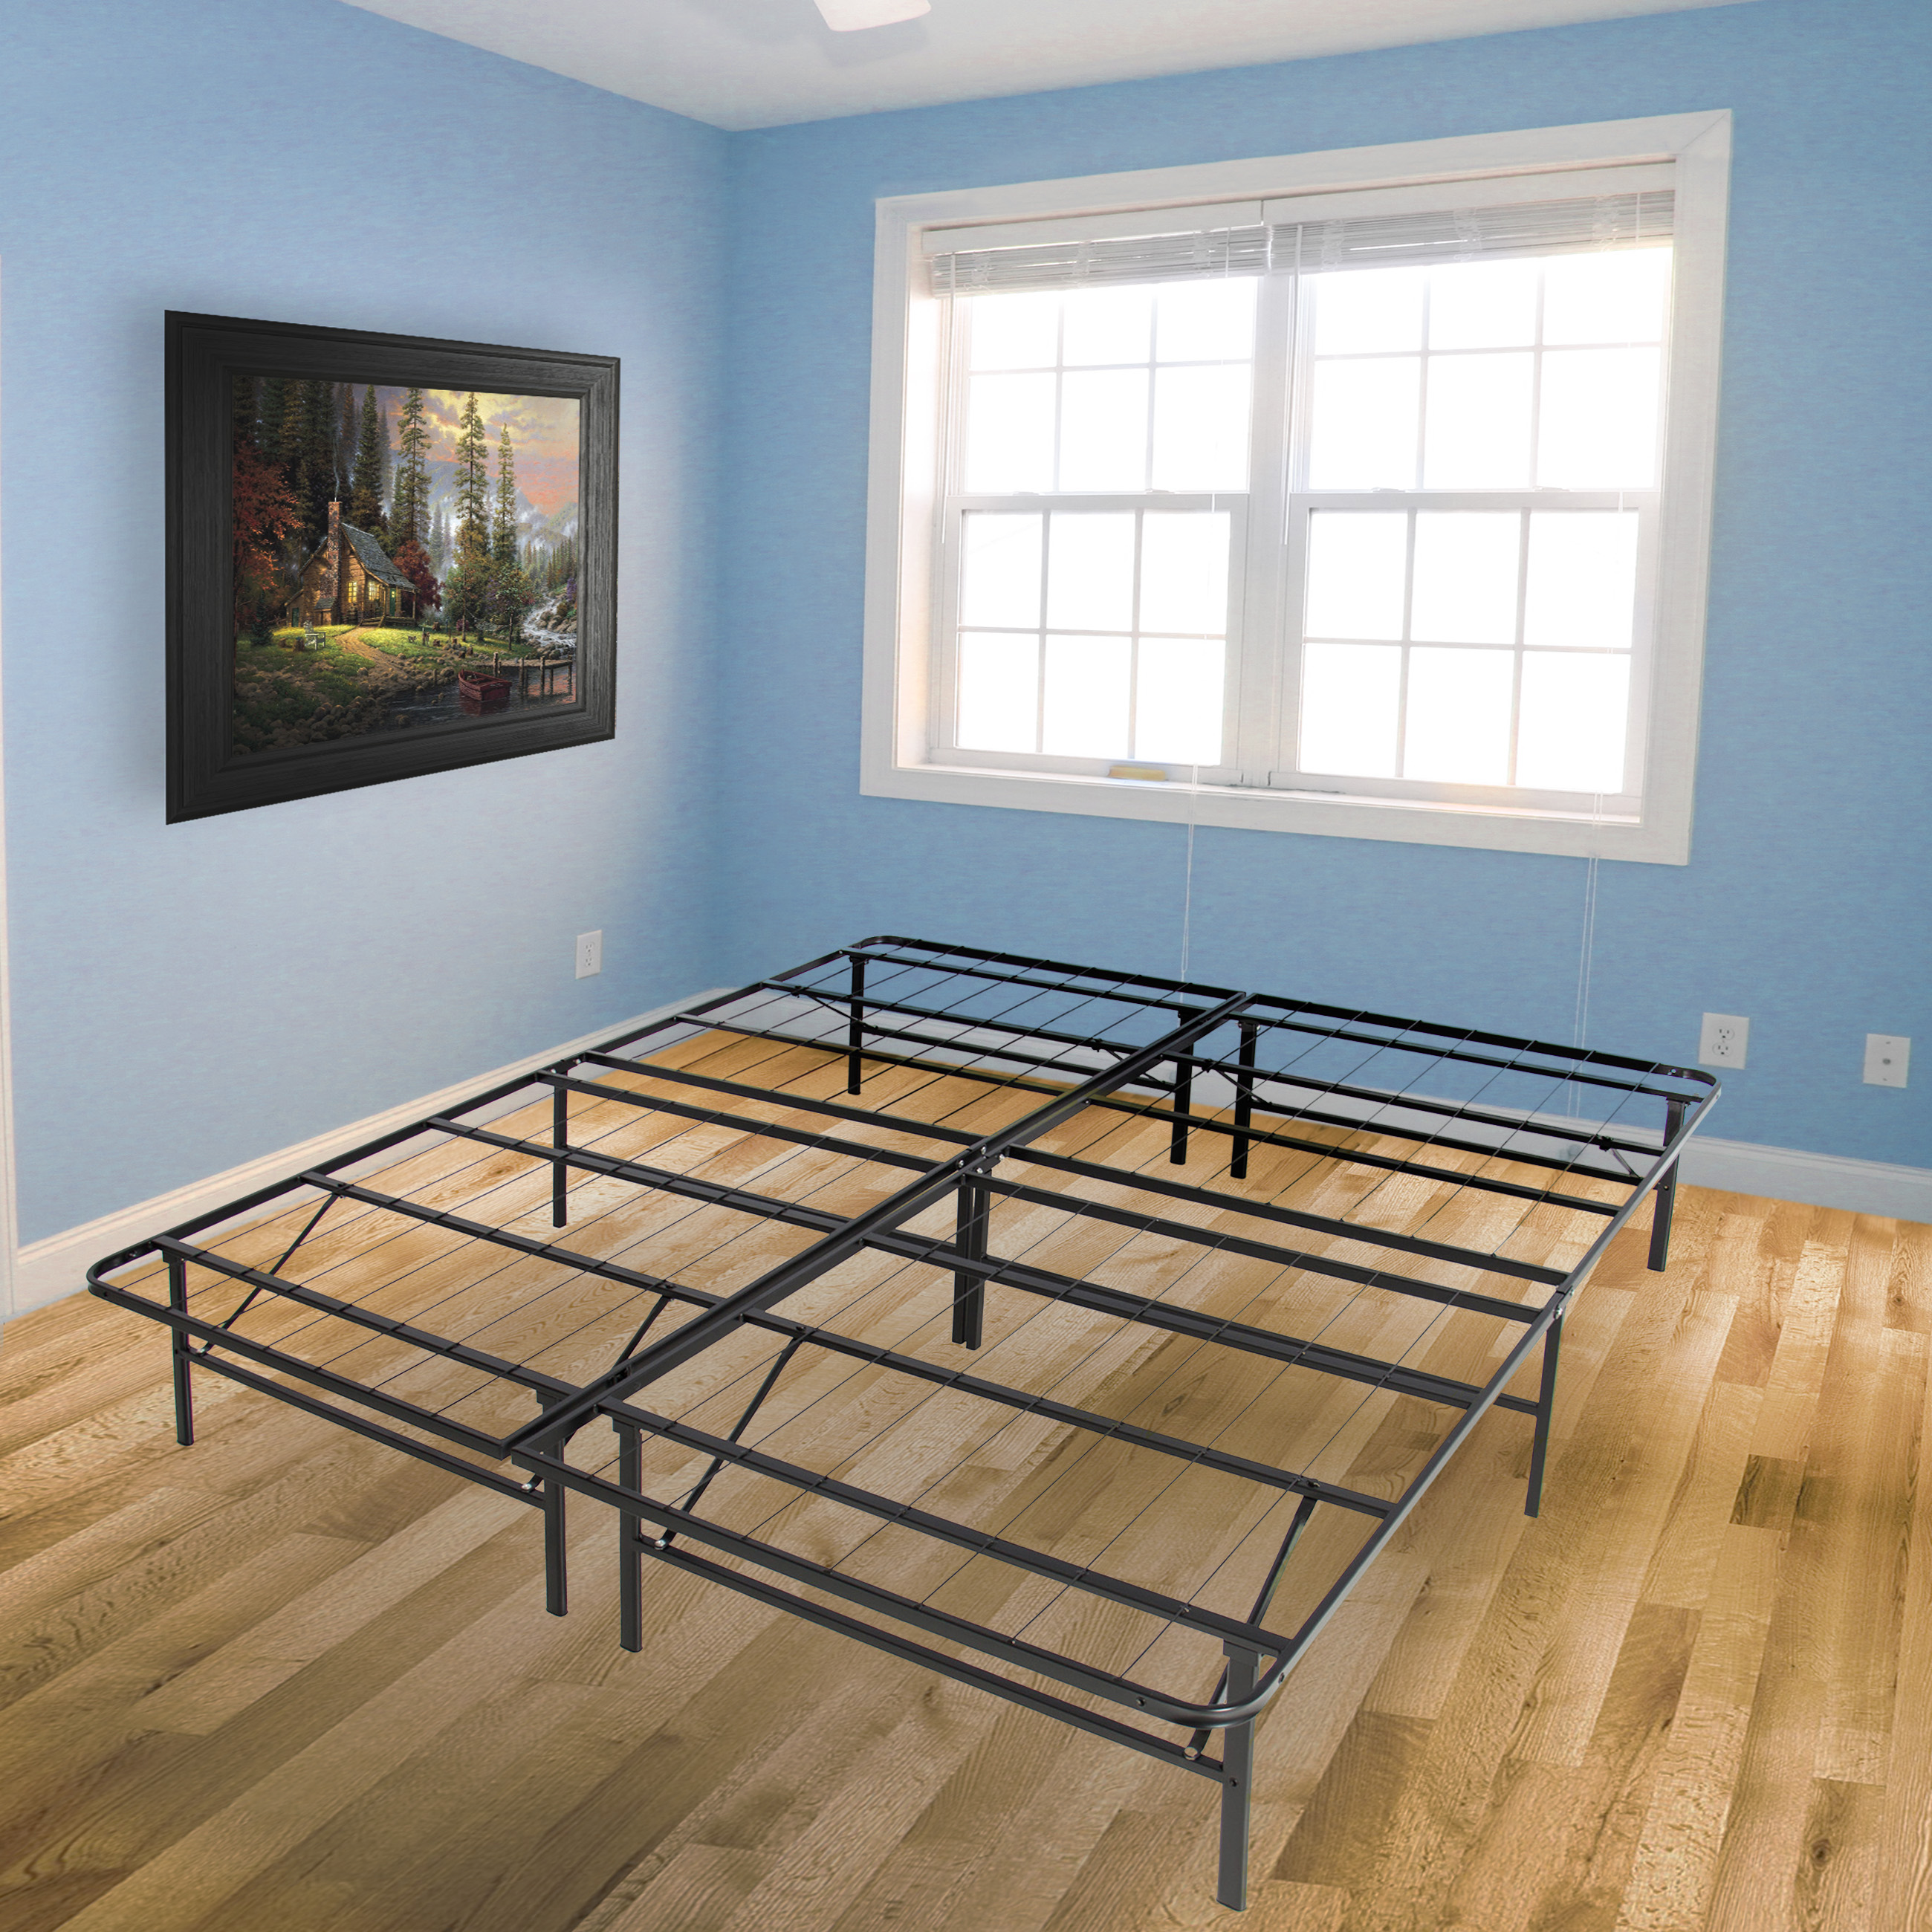 Metal Bed Frames Queen platform metal bed frame foldable no box spring needed mattress